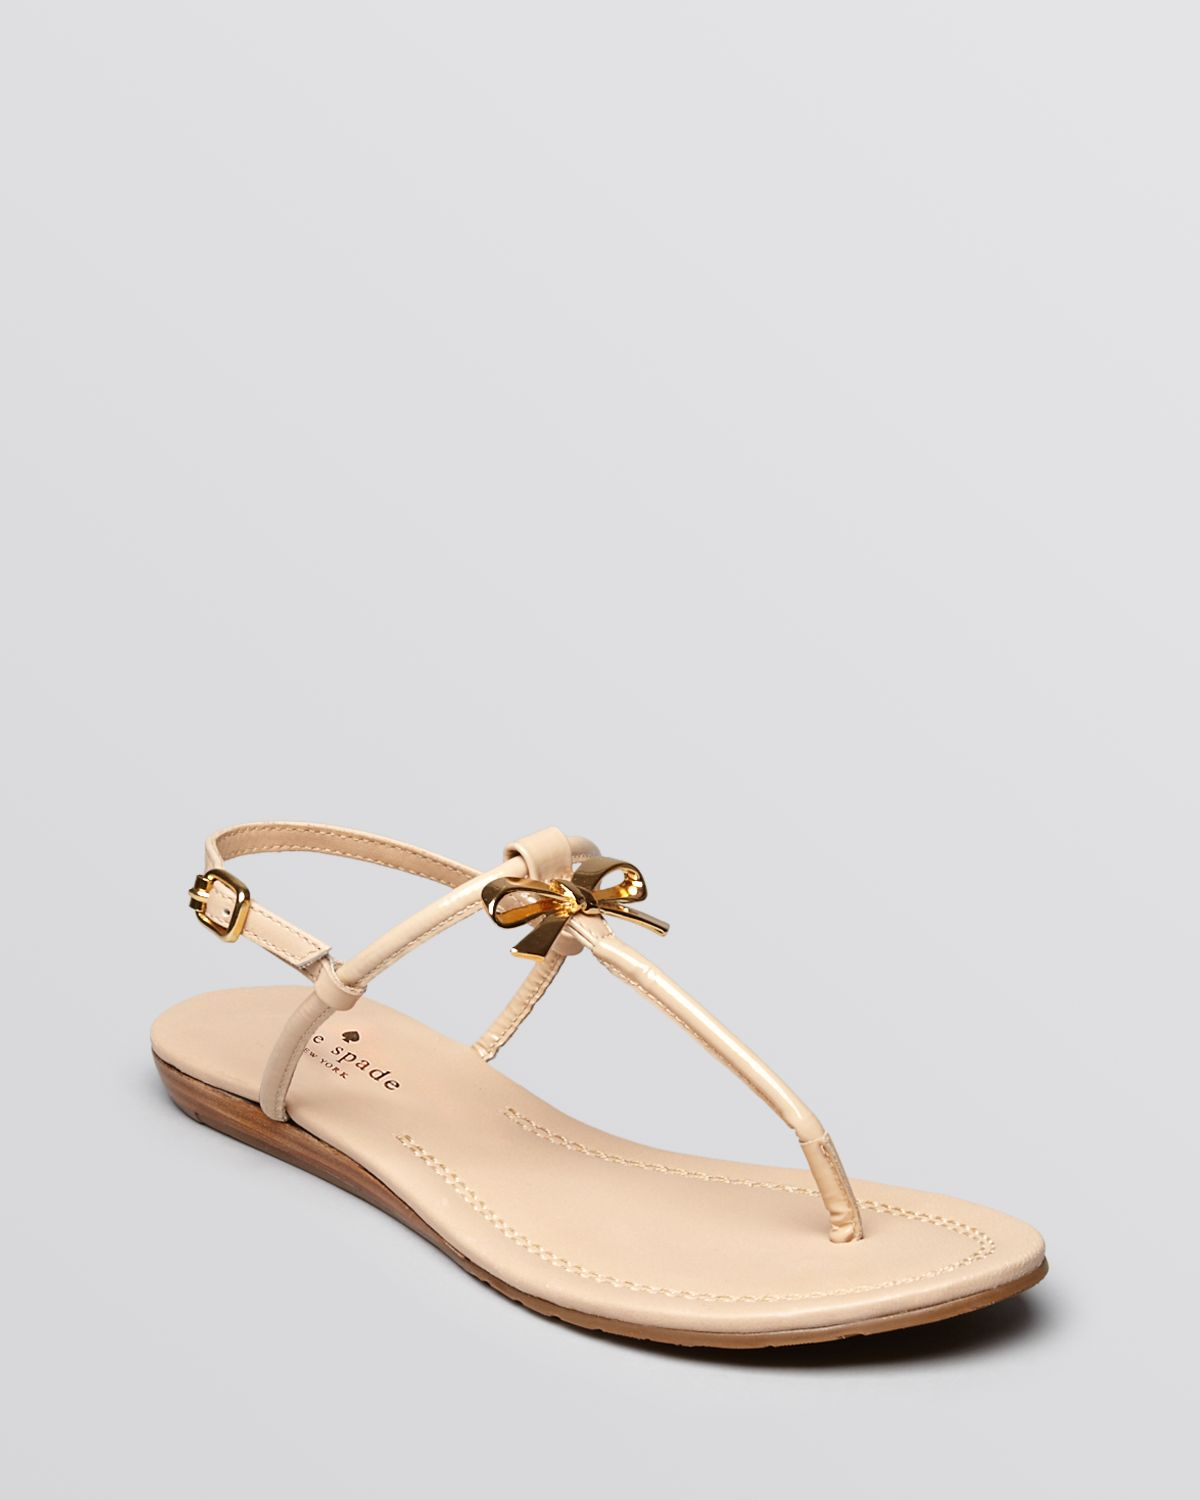 86f78218c4b7 Lyst - Kate Spade Flat Thong Sandals Tracie Bow in Natural